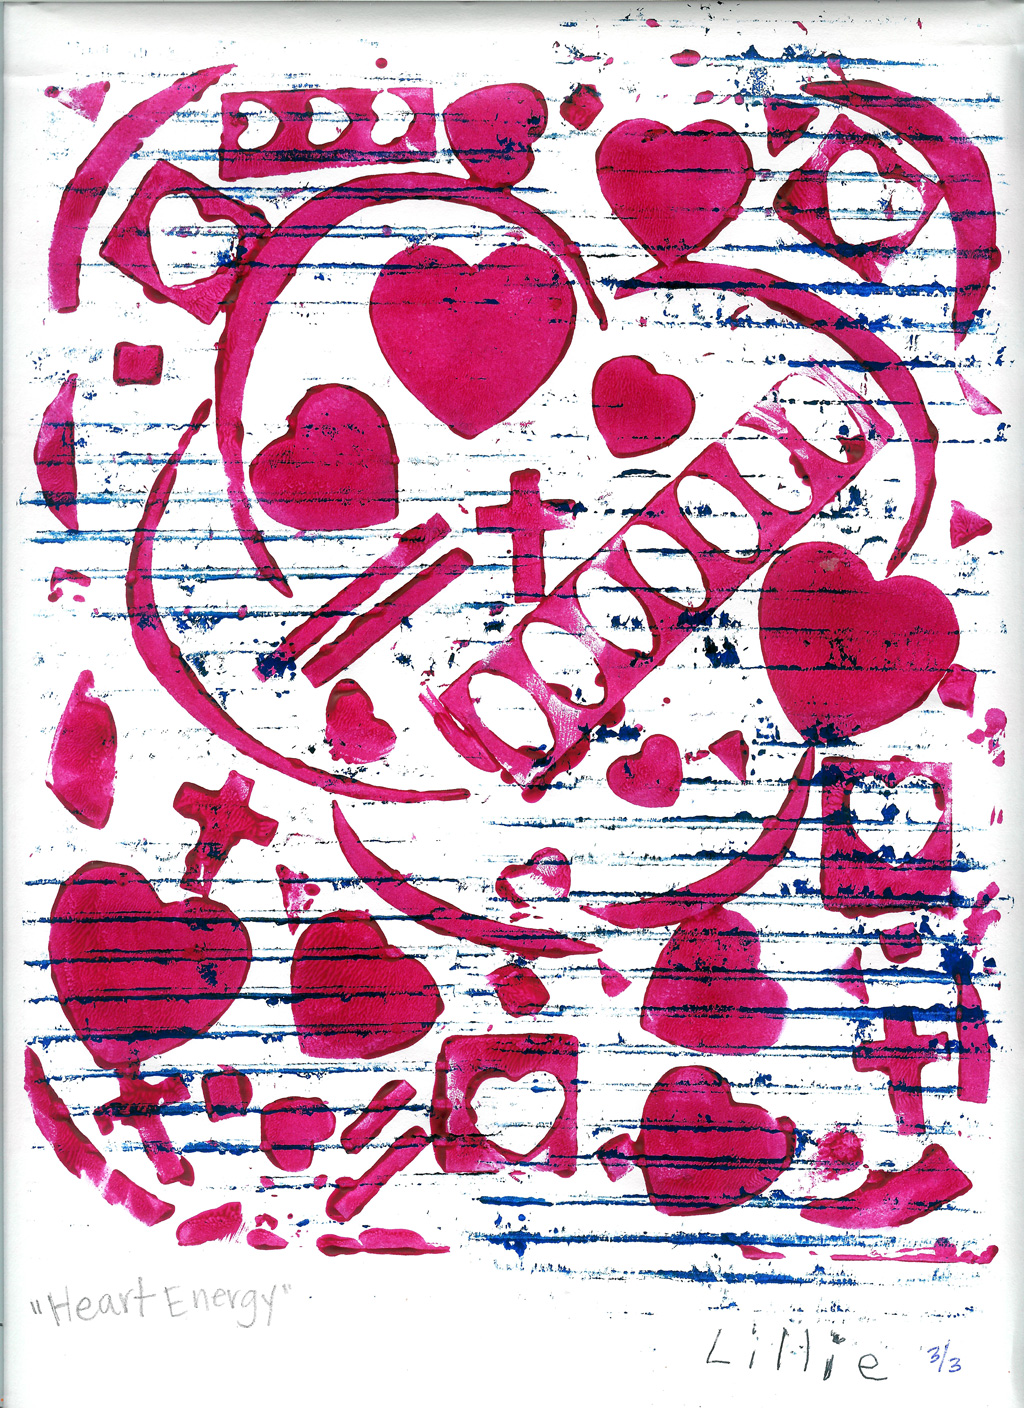 US-LArche_Mobile-Lillie_Swindle-Heart_Energy-27.9x35.6-Relief_print_Ink_on_paper-2014